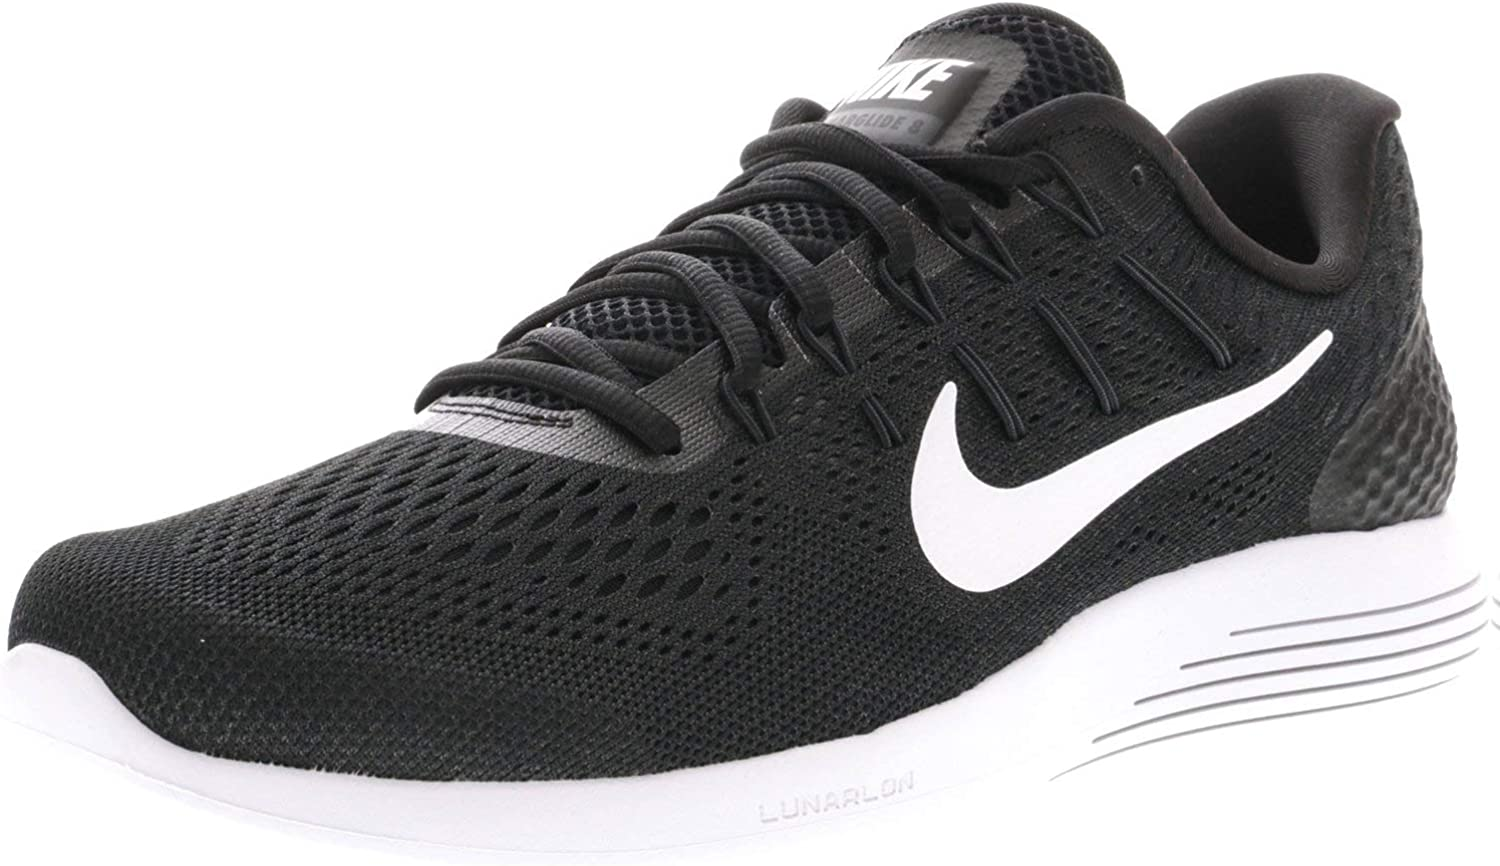 Nike Mens Lunarglide 8 Running Shoe, Black White-Anthracite,